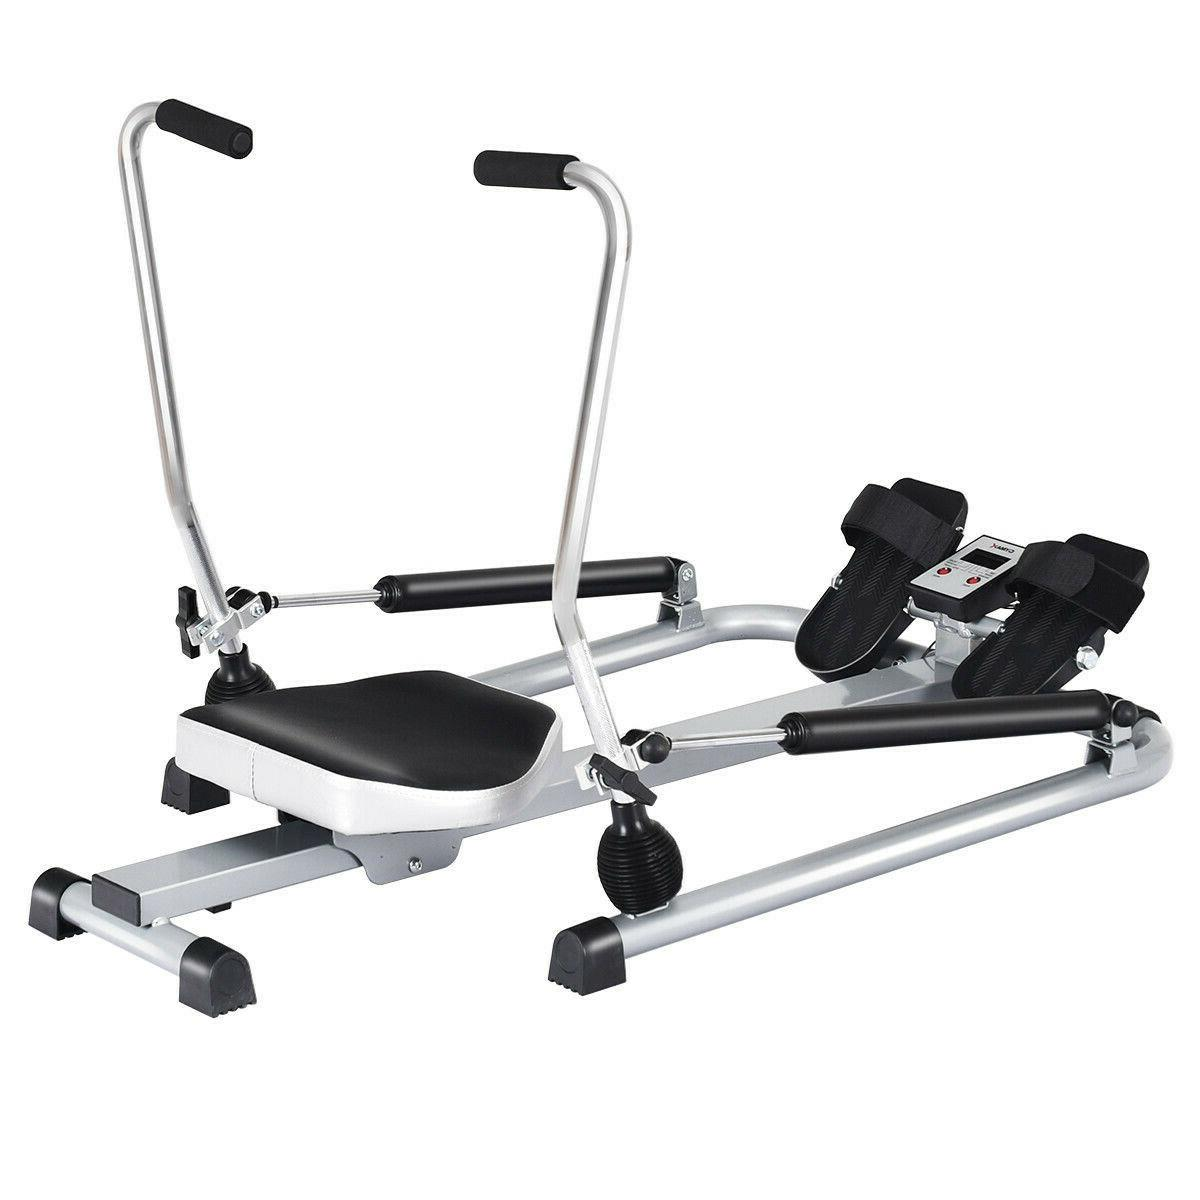 Rowing Hydraulic Adjustable Levels Home Cardio